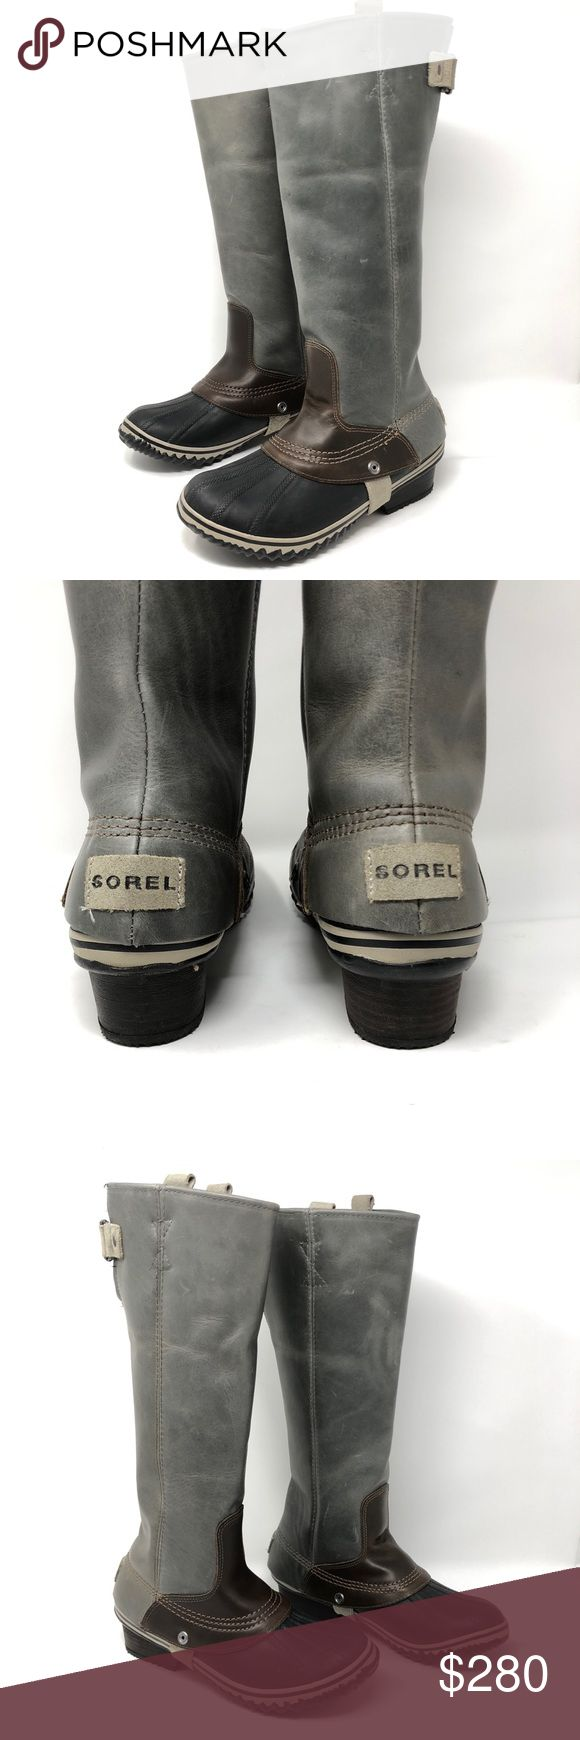 Sorel Slimpack Gray Leather Riding Boots SZ 8 SOLD OUT style. Hard to find in this condition. Beautiful well crafted leather that will last for a long time.   Preowned. Very gentle signs of wear. Appears to have been worn once or twice. No scuffs, holes or foul odors. Light tread wear. Some scattered marks— appears to be water marks. Black line on heel (see last three pictures). Please see pictures for detailed condition of item. Shipping from smoke free environment. Please do not hesitate…